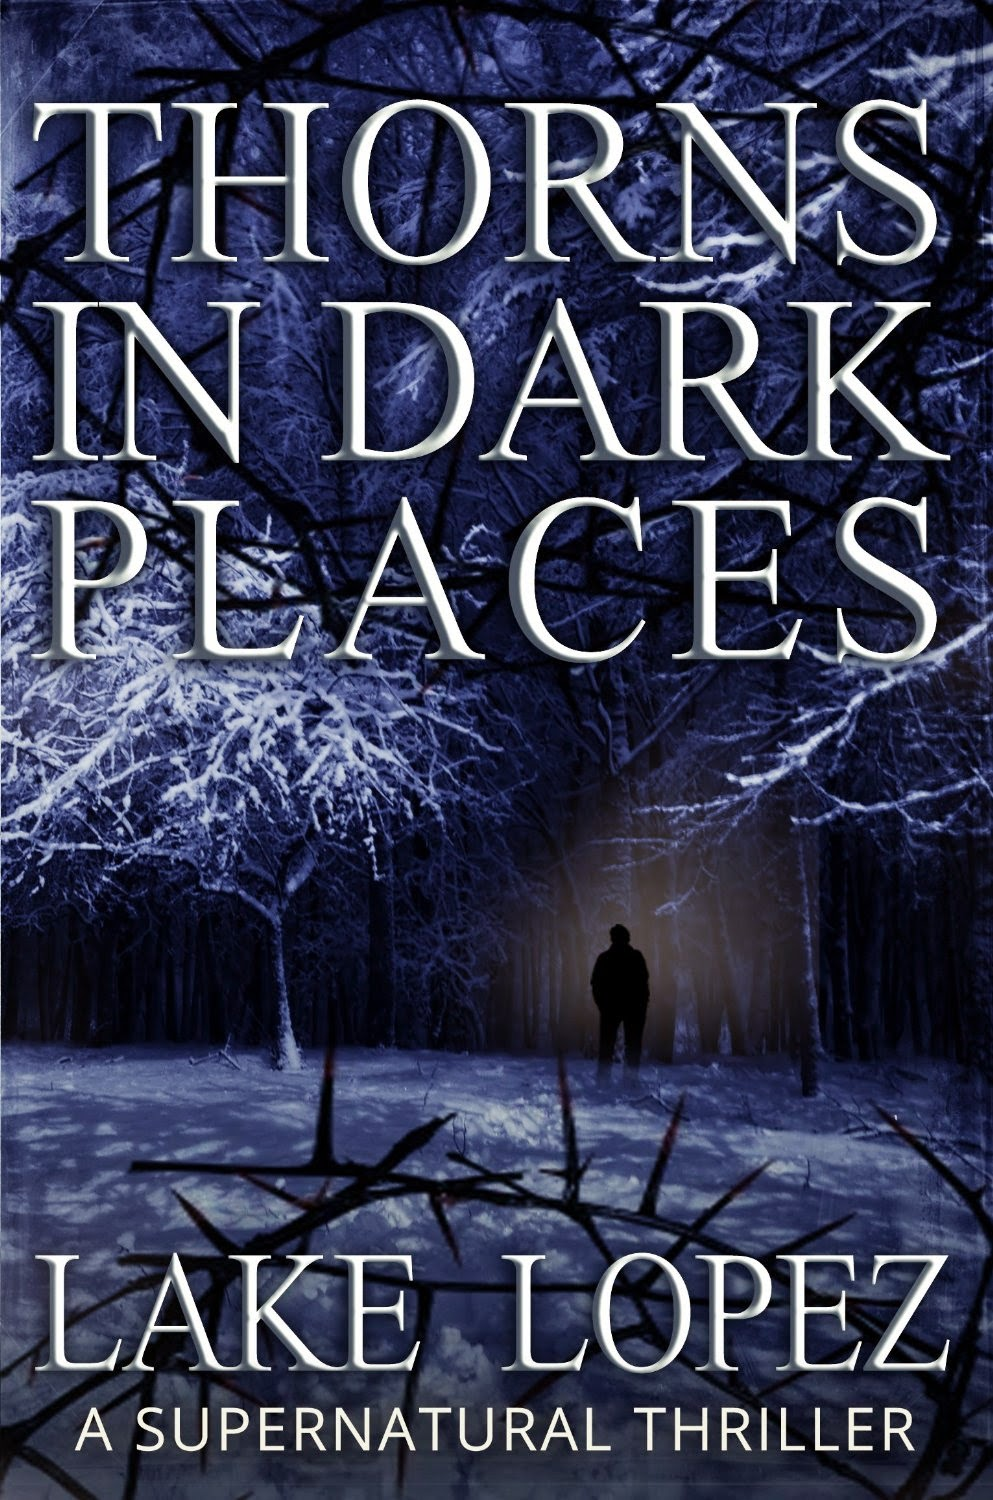 http://www.amazon.com/Thorns-Dark-Places-Supernatural-Thriller-ebook/dp/B00COXXPDA/ref=sr_1_1?s=books&ie=UTF8&qid=1412337475&sr=1-1&keywords=lake+lopez+thorns+in+dark+places